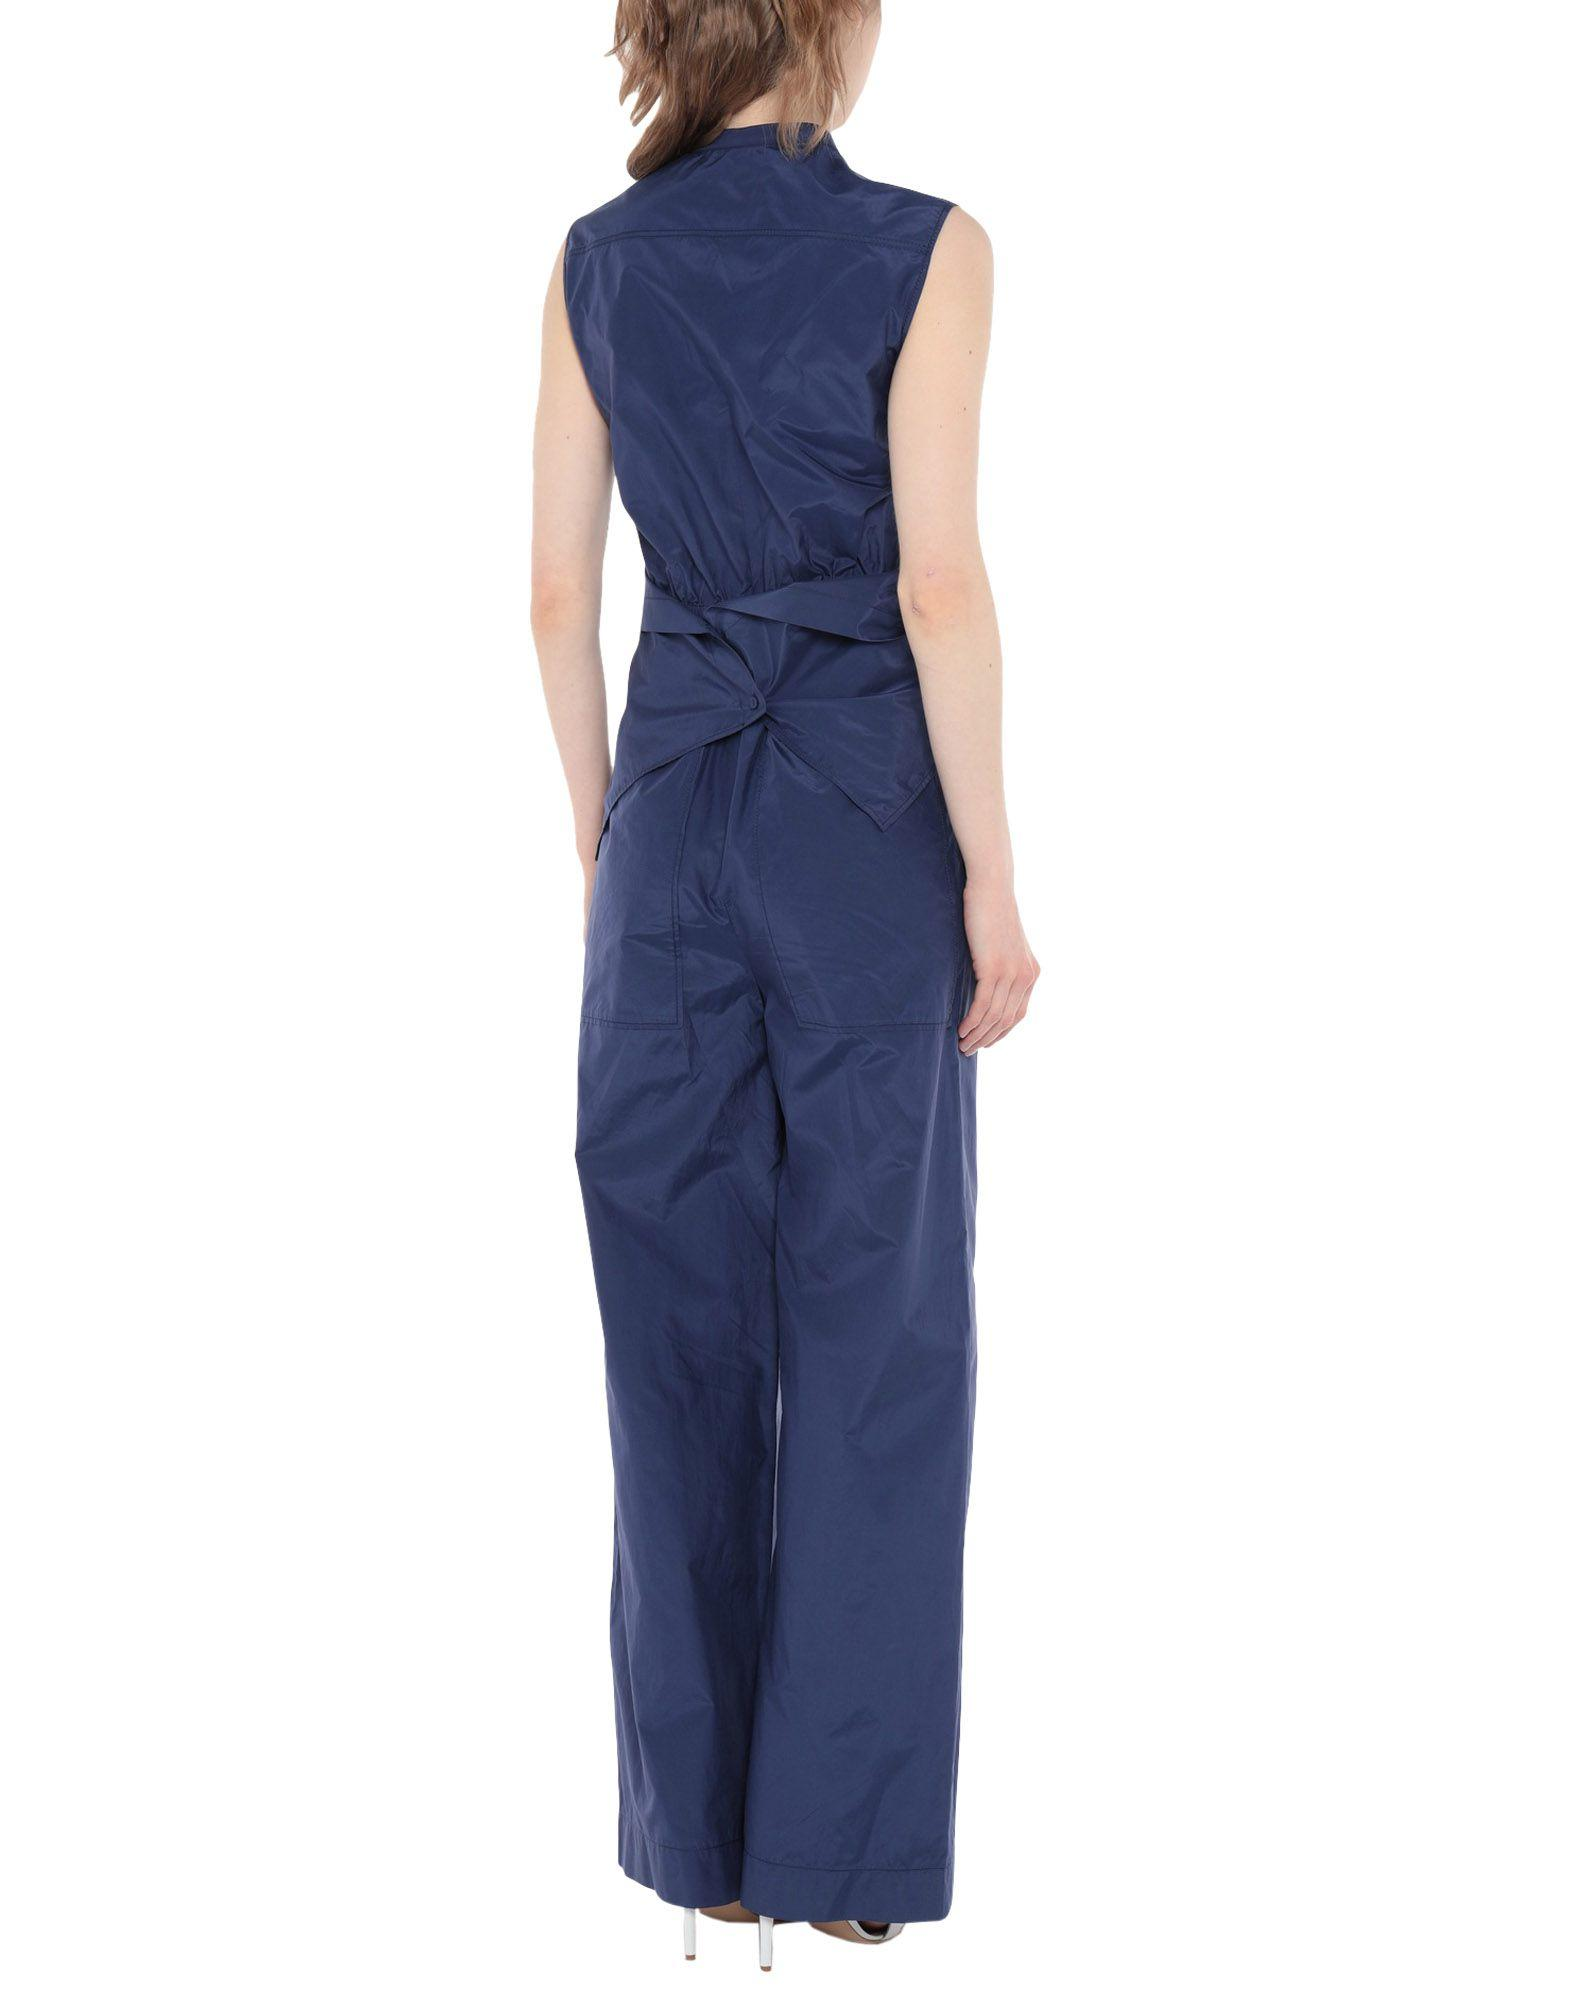 65a9fb2a0028 Ports 1961 Jumpsuit in Blue - Lyst